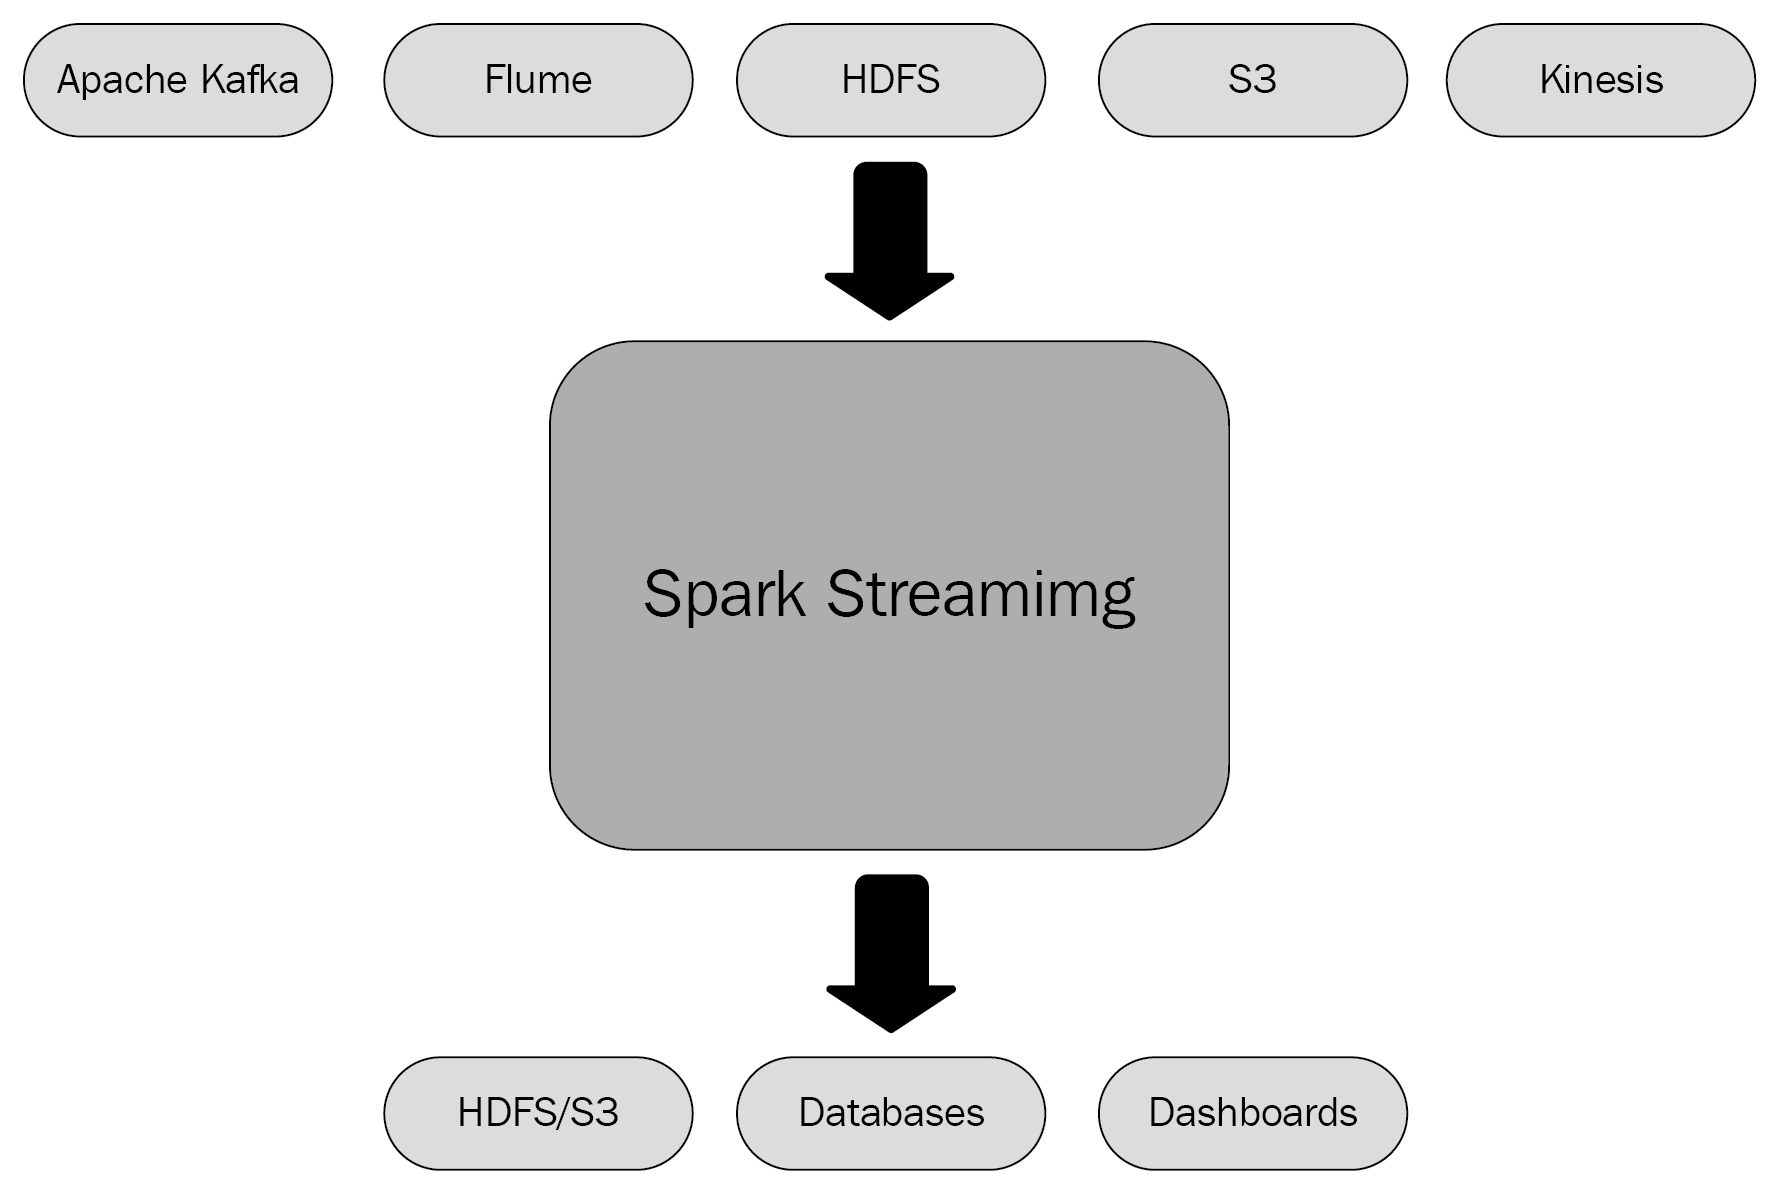 Spark Streaming - Hands-On Deep Learning with Apache Spark